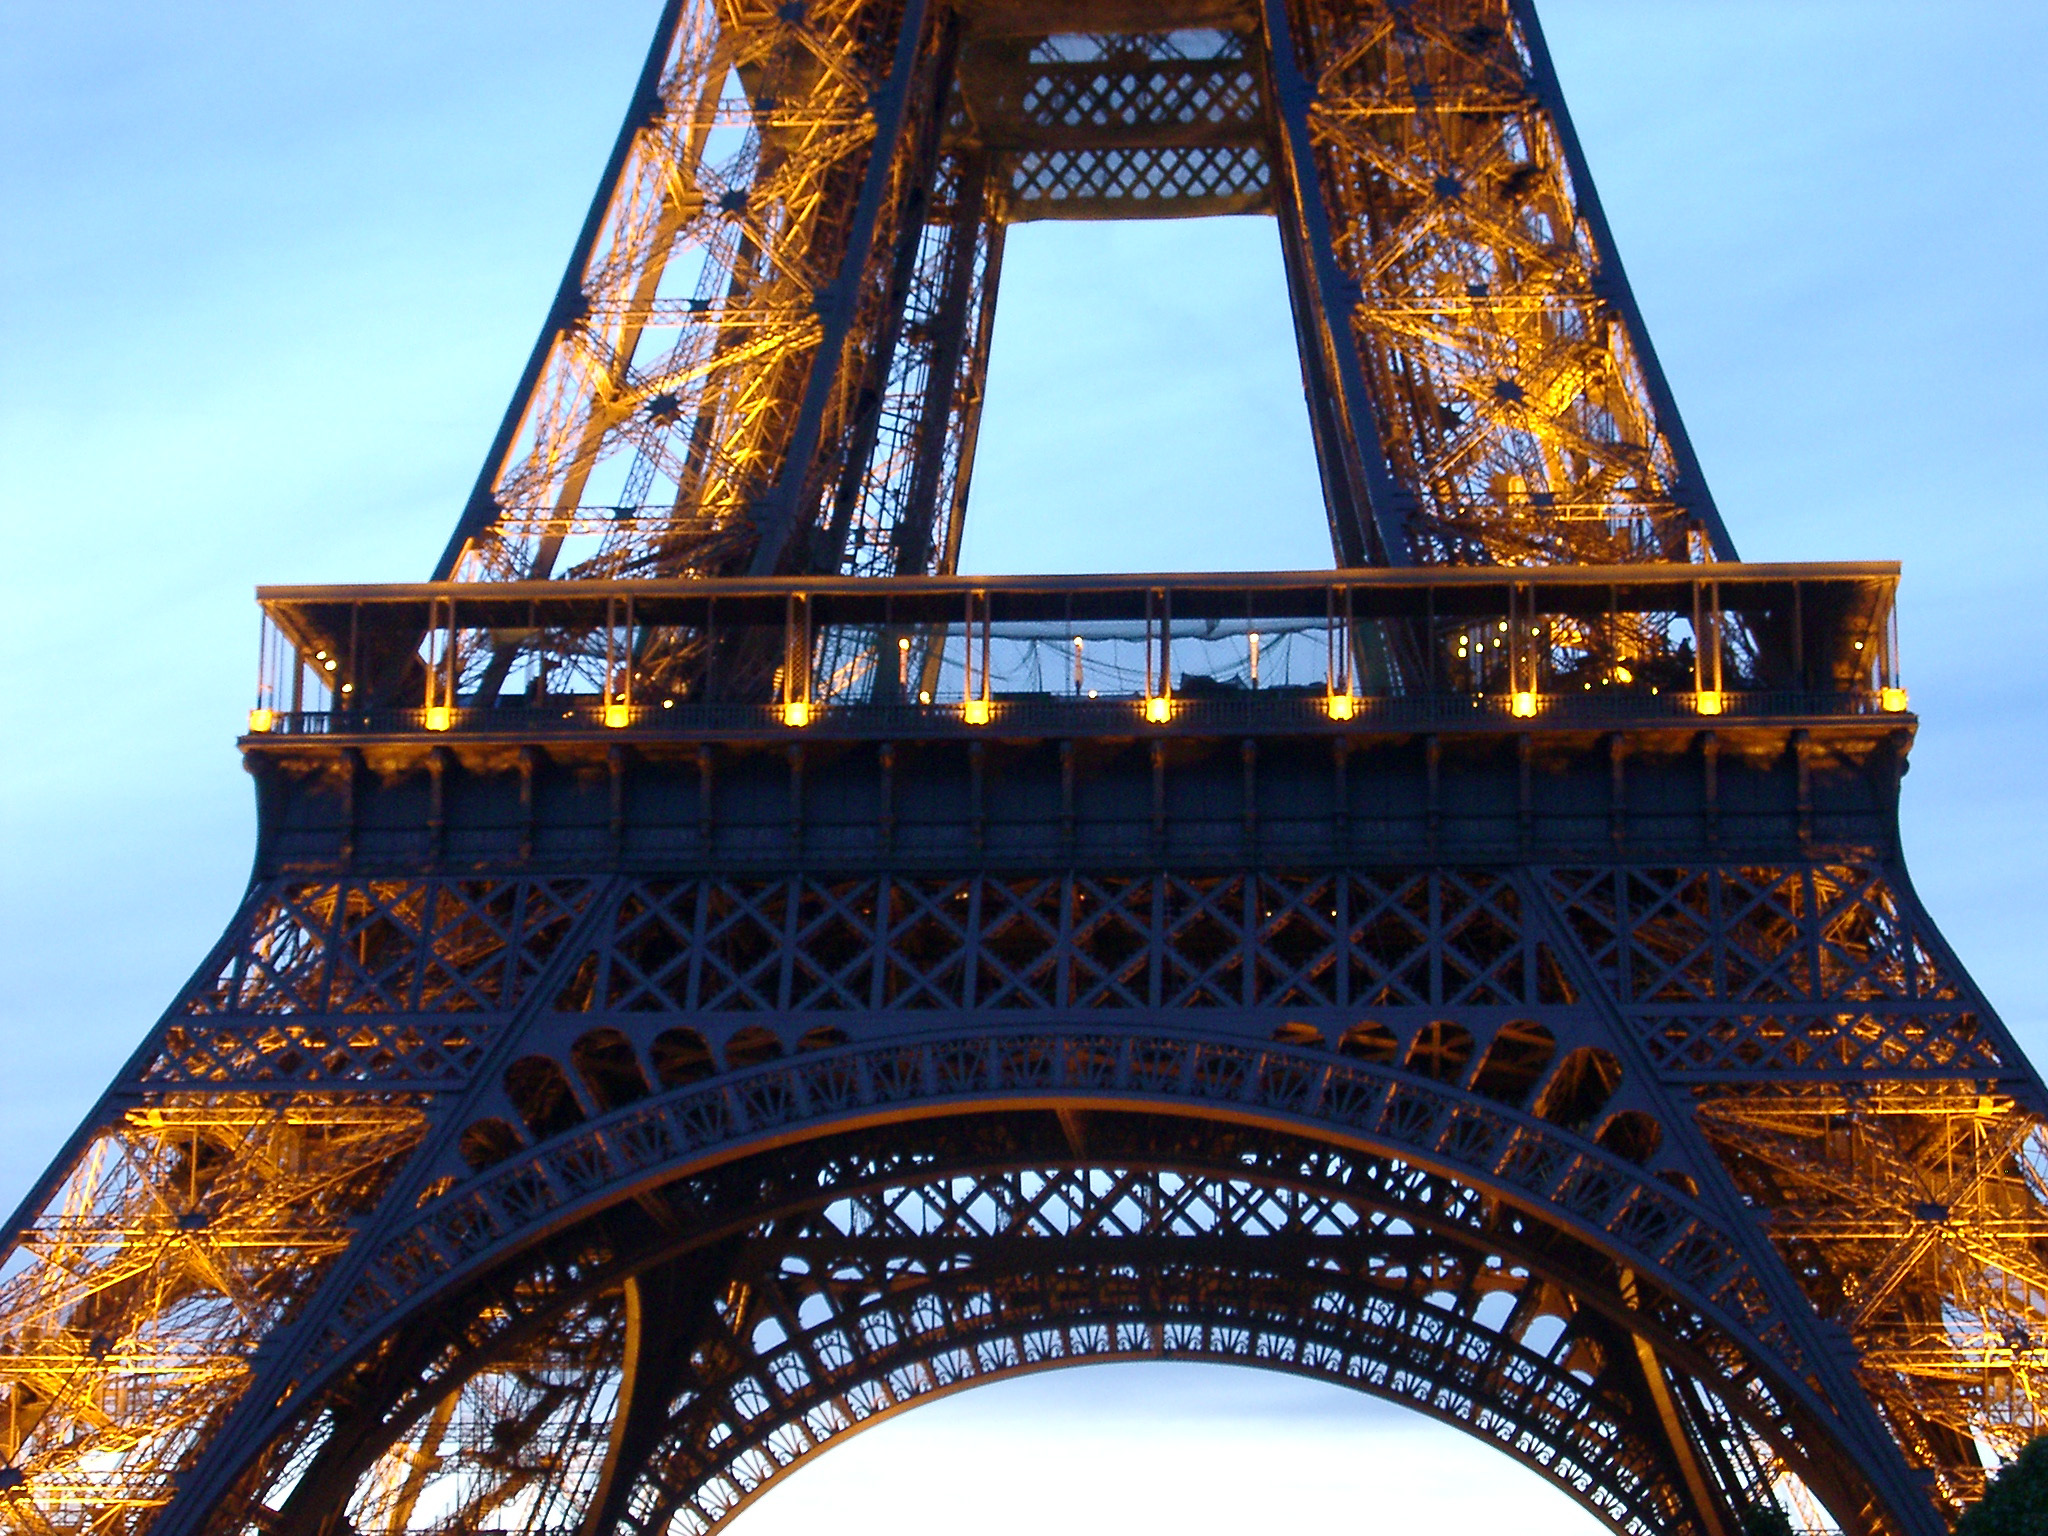 Detail of the Eiffel Tower, Paris, France showing the structure of the wrought iron lattice framework of the tower against a blue sky